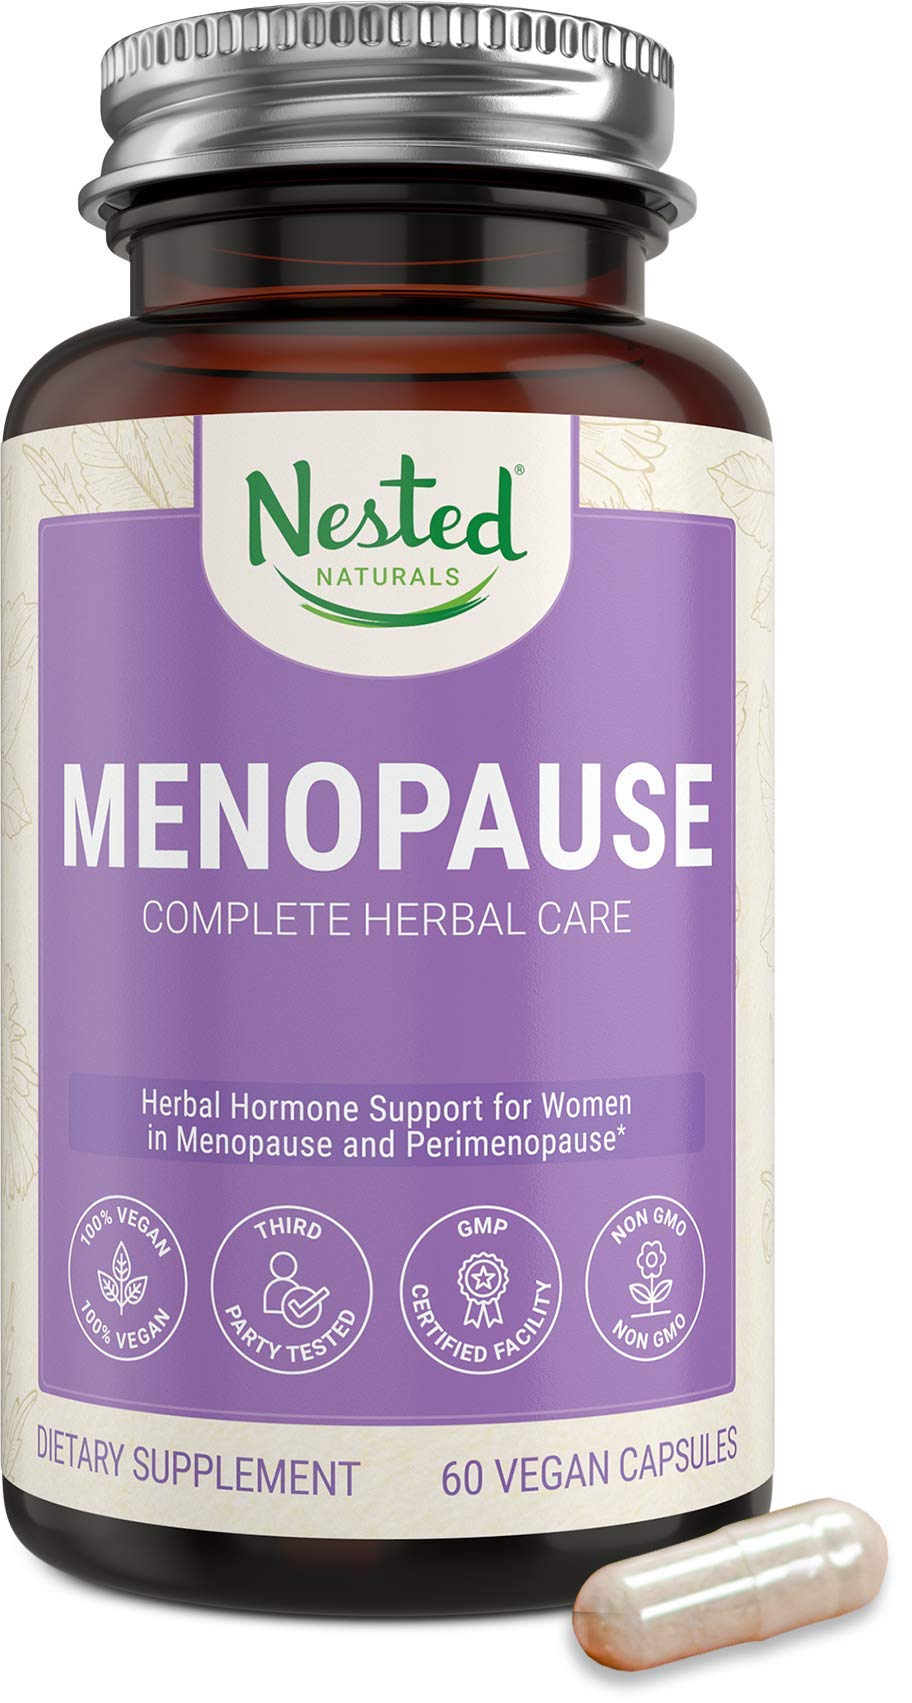 Menopause Complete Herbal Care Supplement for Women   60 Vegan Capsules   Natural Black Cohosh Extract & Dong Quai Root   Support for Mood Swings & Hot Flashes   One A Day Menopause Relief